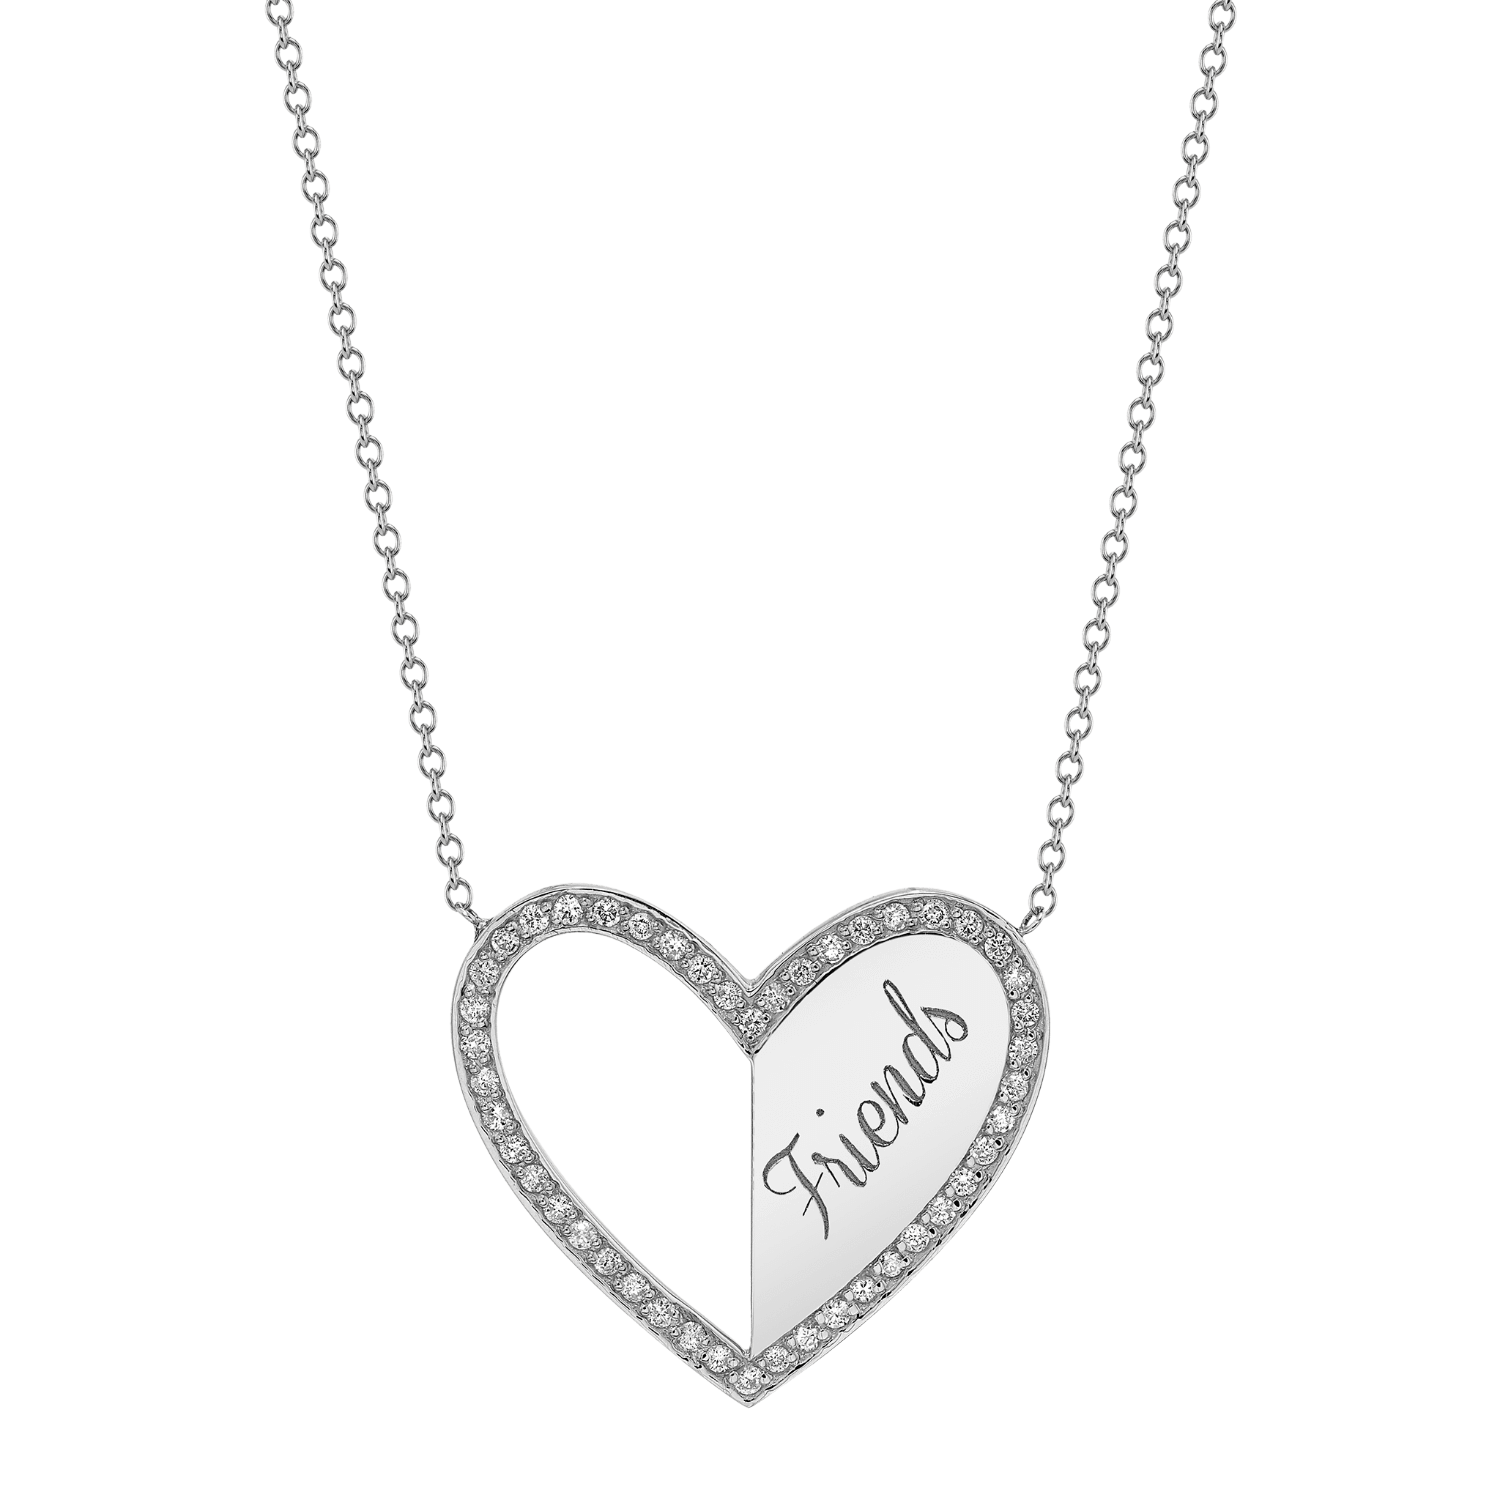 Kids Best Friend Heart Necklaces (Set of 2)